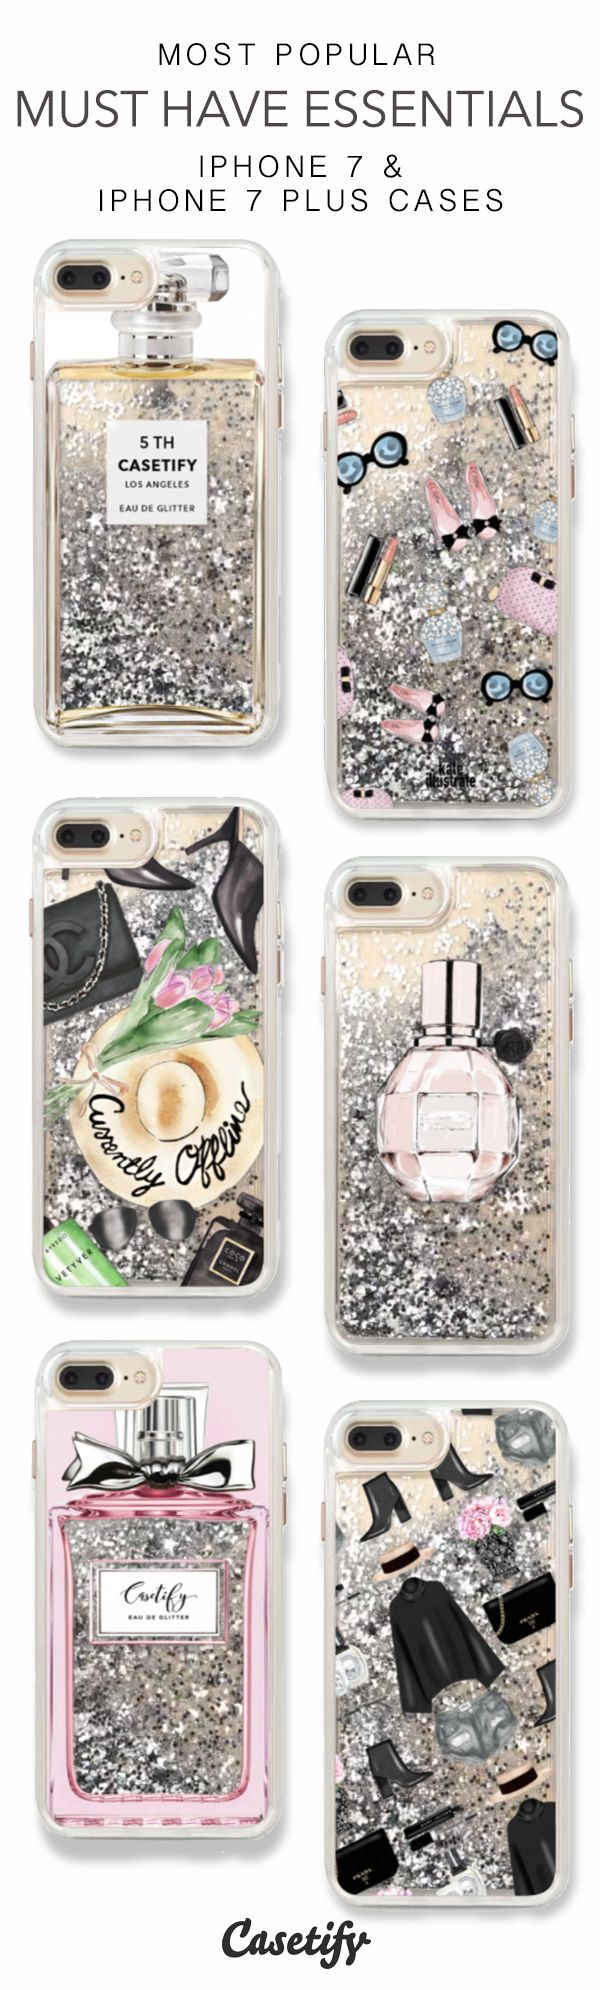 Most Popular Must Have Essentials iPhone 7 Cases & iPhone 7 Plus Cases here >  https://www.casetify.com/en_US/collections/iphone-7-glitter-cases#/